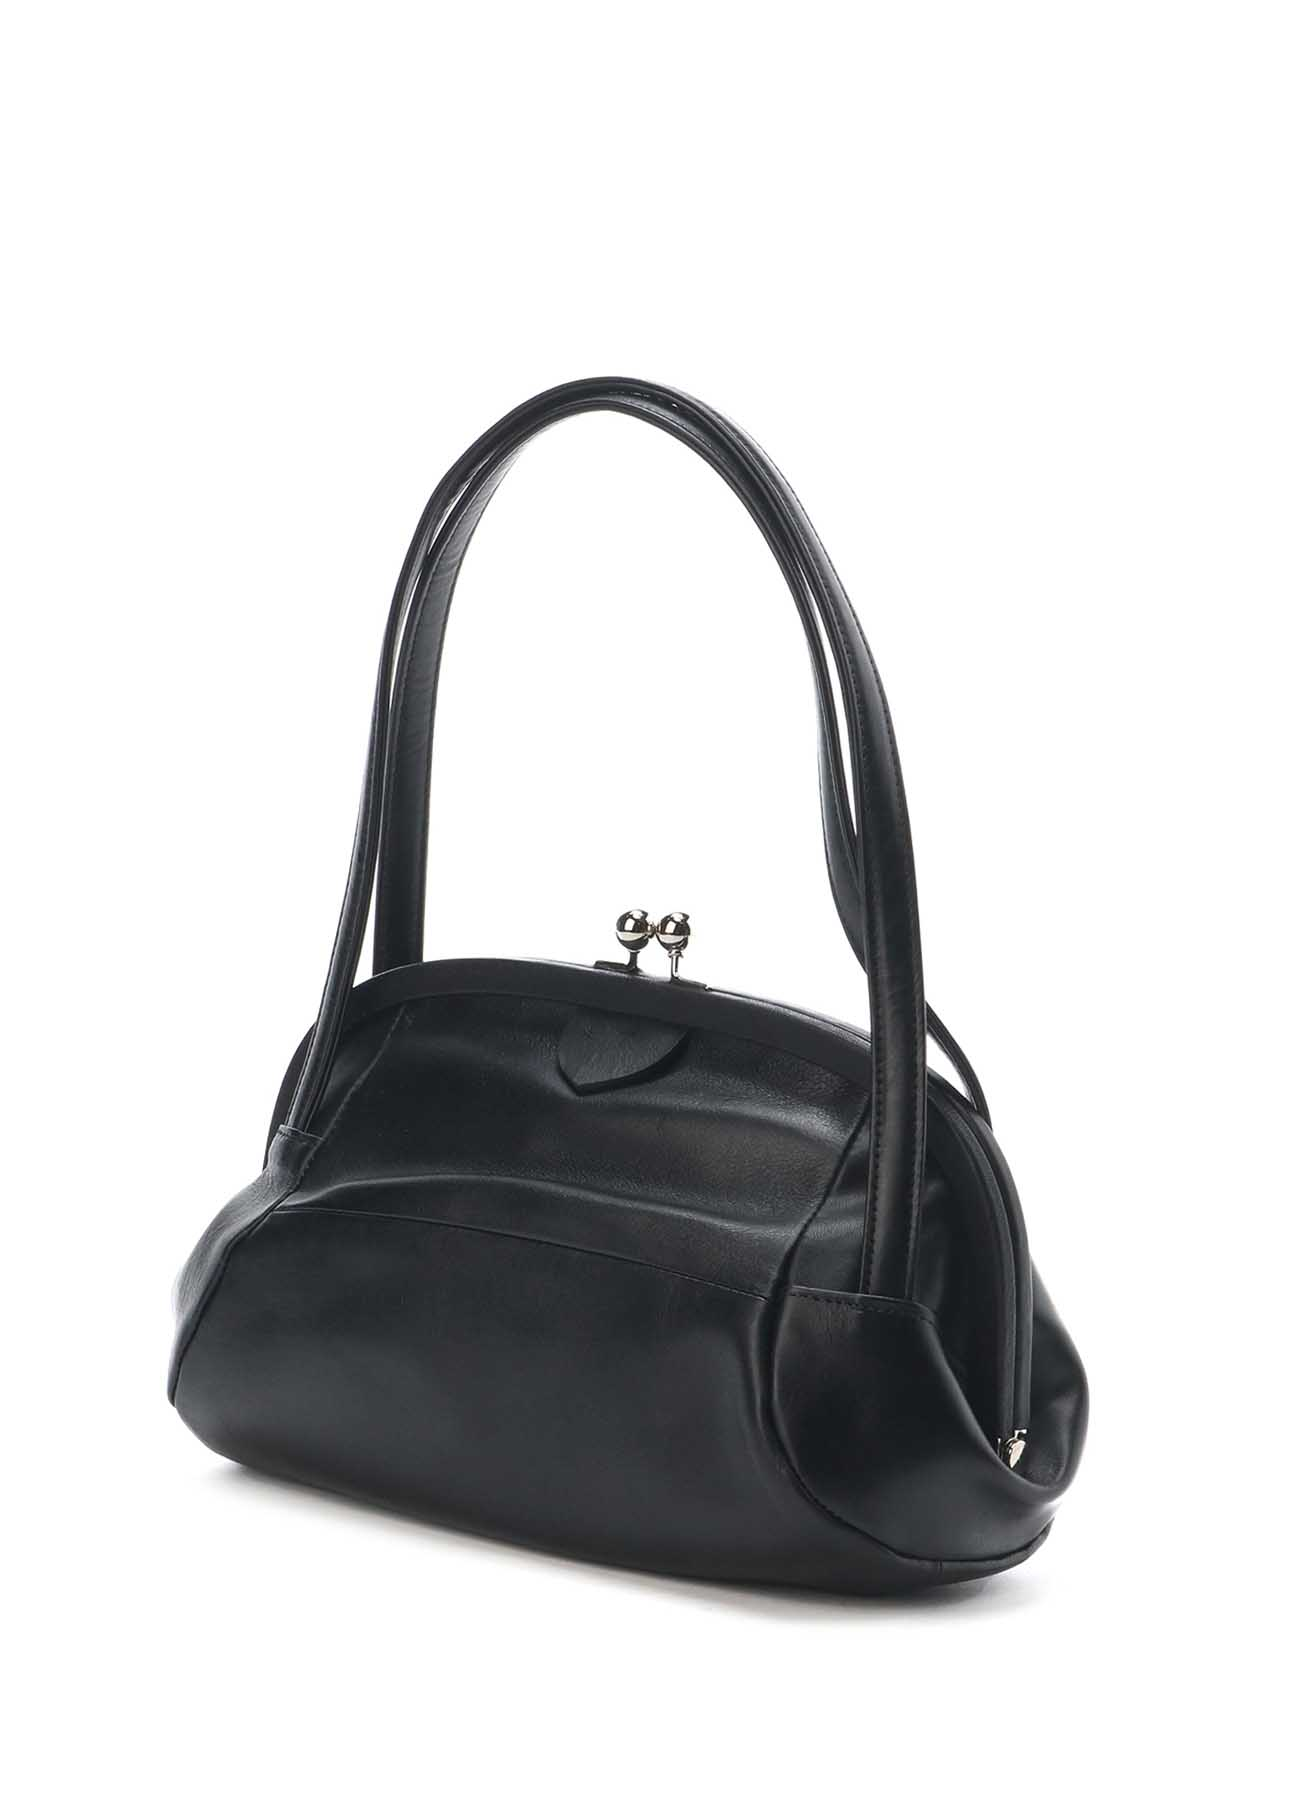 SEMI GLOSS LEATHER RUGBY DESIGNED CLASP BAG